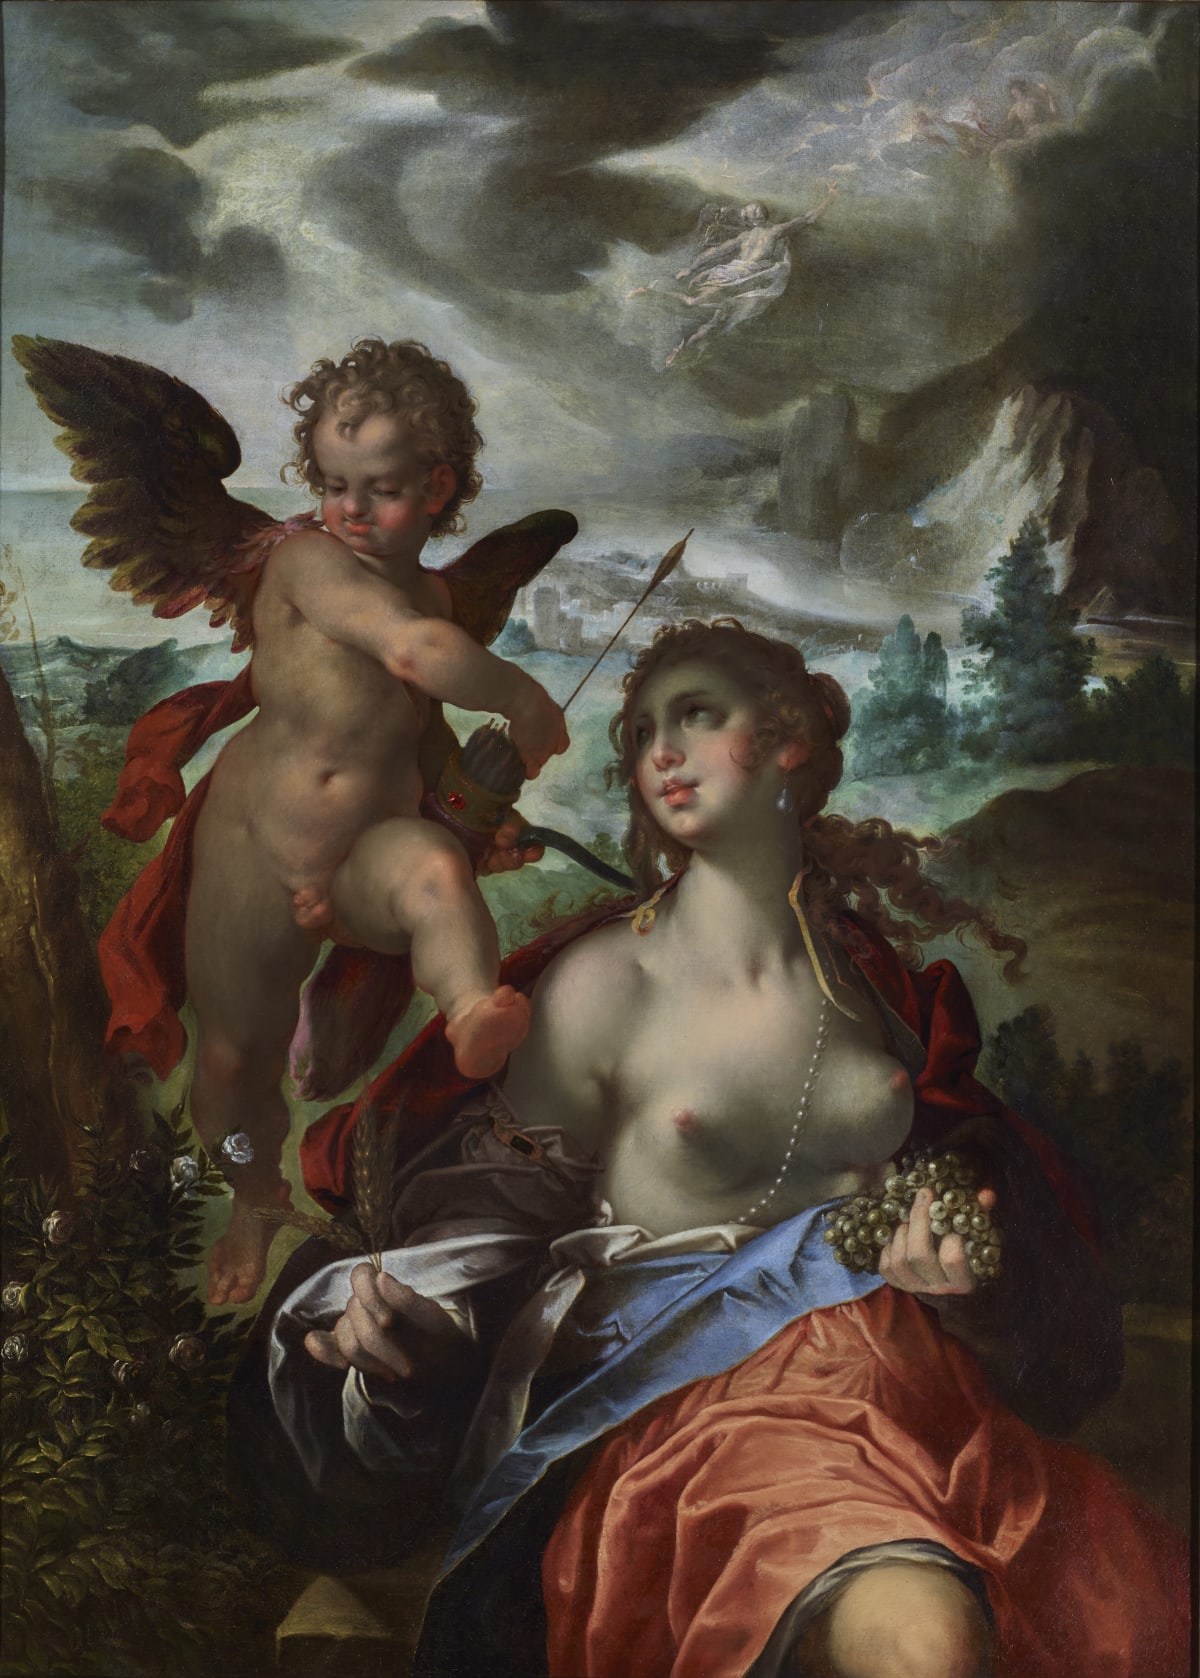 Bartholomeus Spranger (1546 – 1611) Venus and Cupid with Mercury and Psyche - an allegory, c.1600 Oil on canvas 55 1⁄8 × 40 1⁄8 in. (140 × 101.9 cm.)